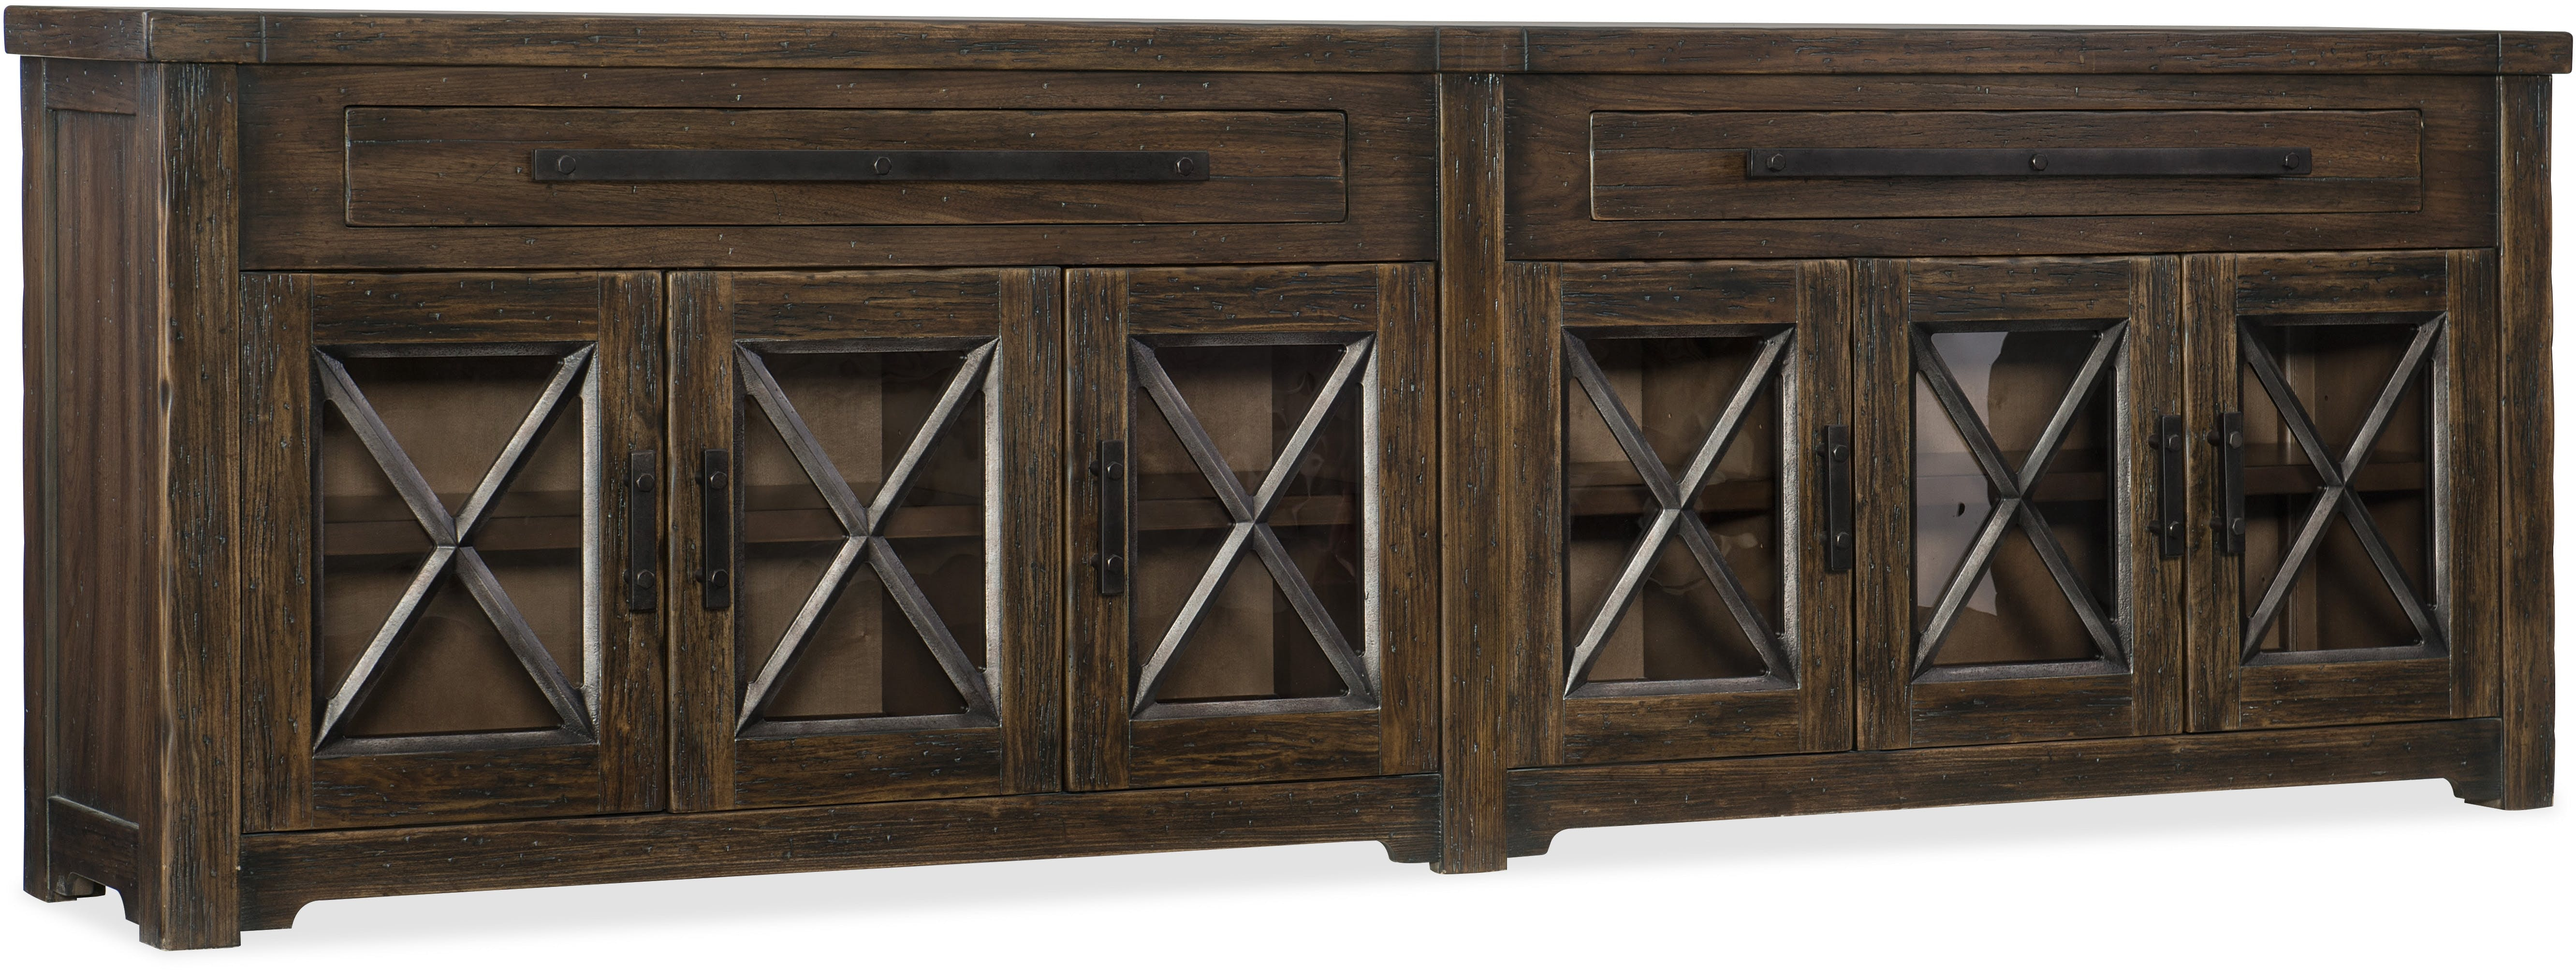 Charmant Roslyn County Media Credenza ST:488394